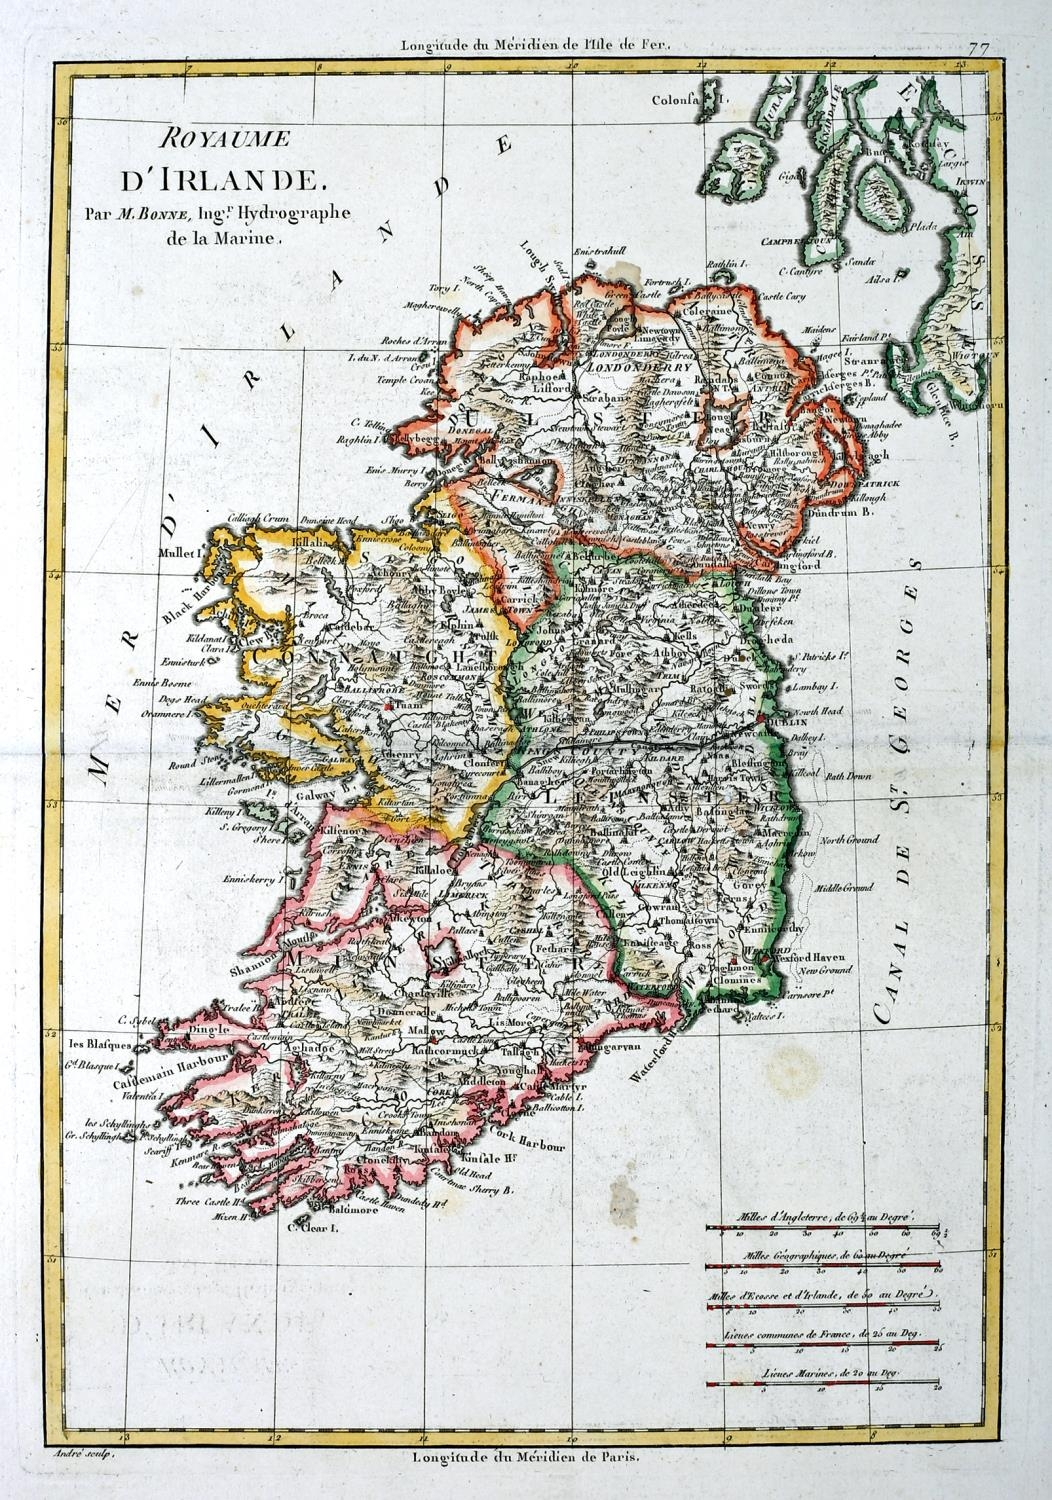 """1766 Map of Ireland by Rigobert Bonne. A hand-coloured, engraved map Royaume D'Irlande, 14"""" x 9½"""" ("""